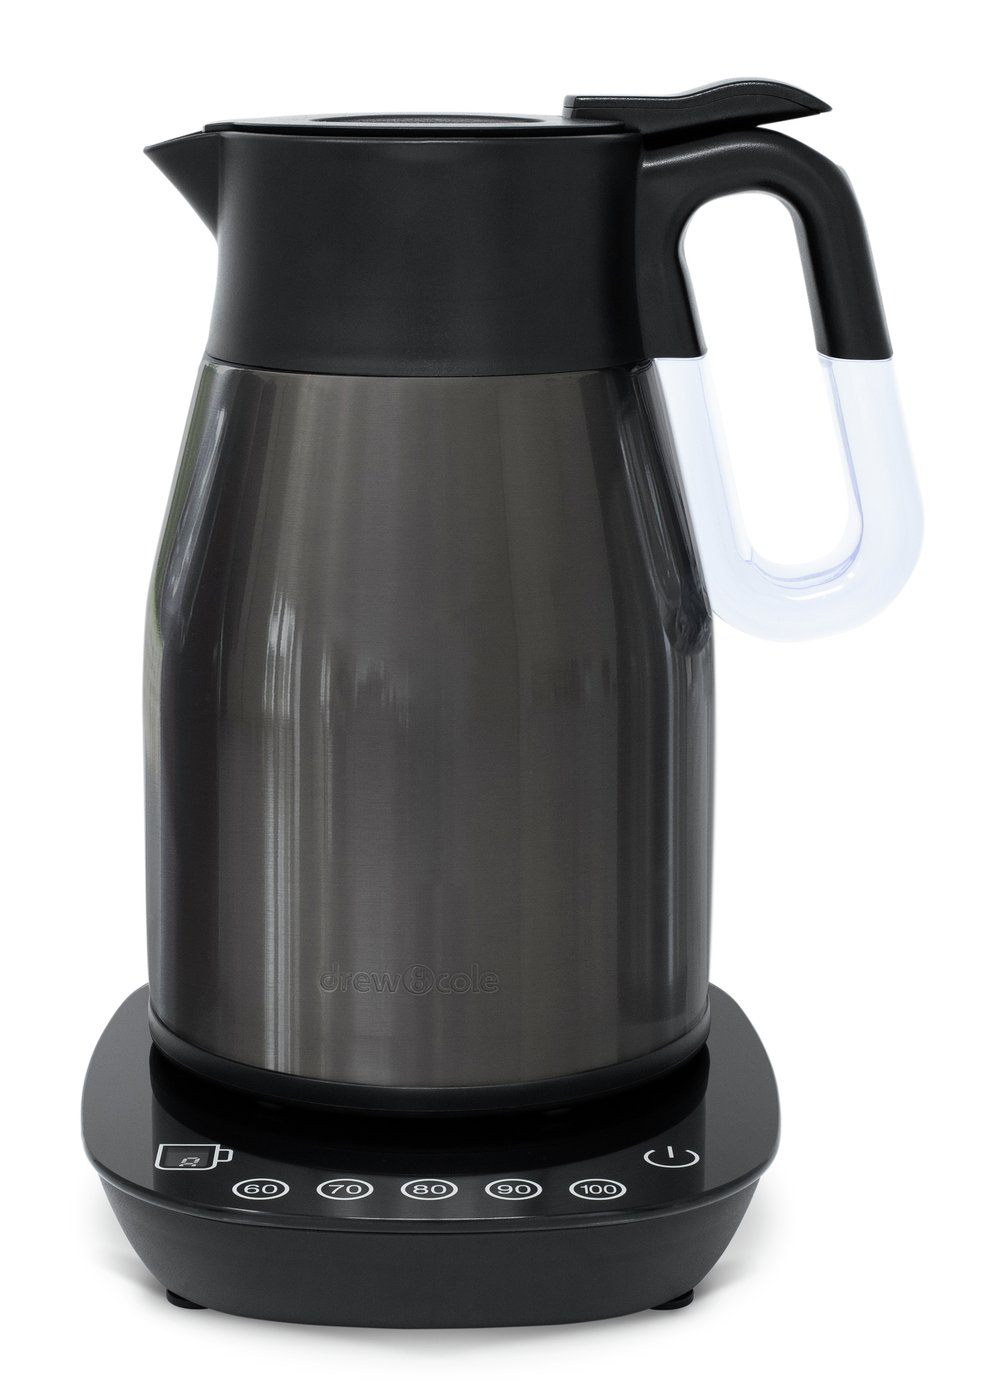 Redi Kettle – Variable Temperature Kettle